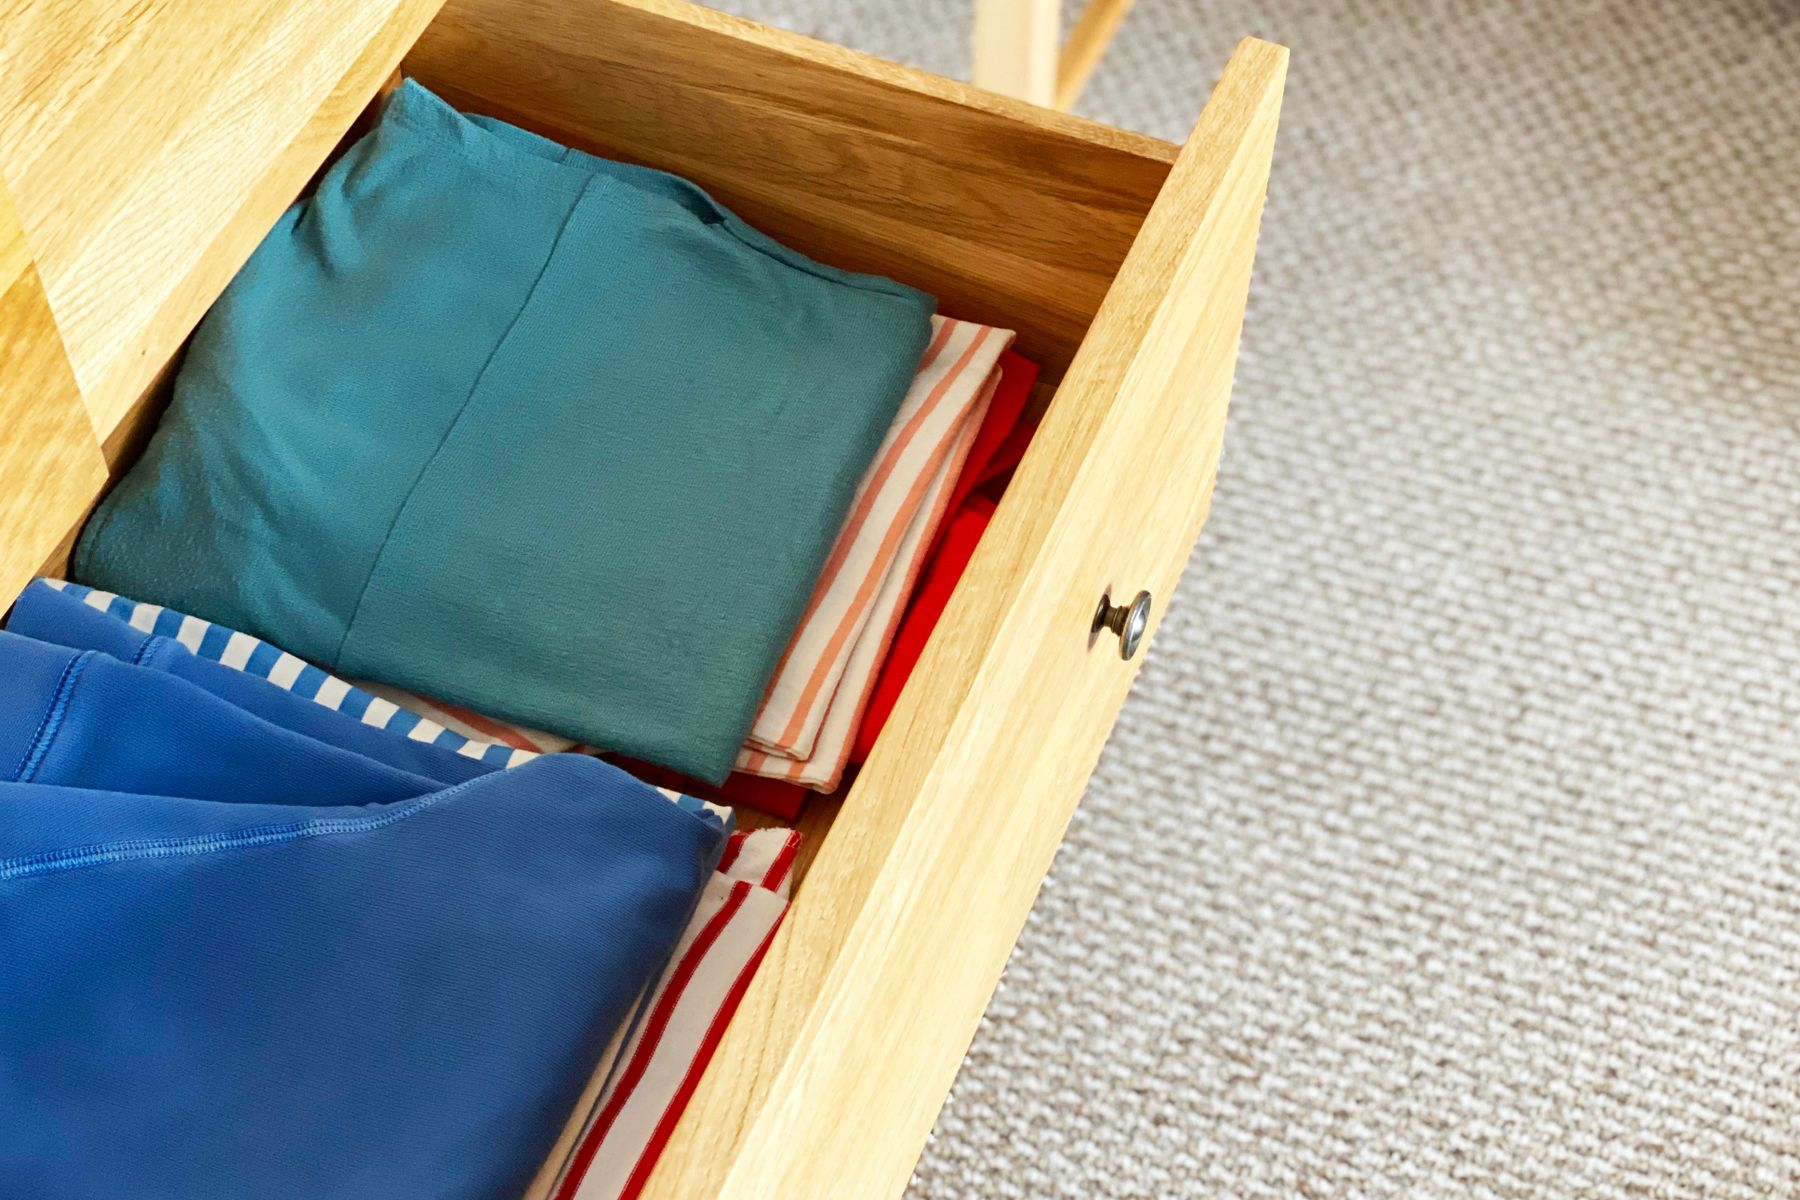 Folded clothes in a drawer